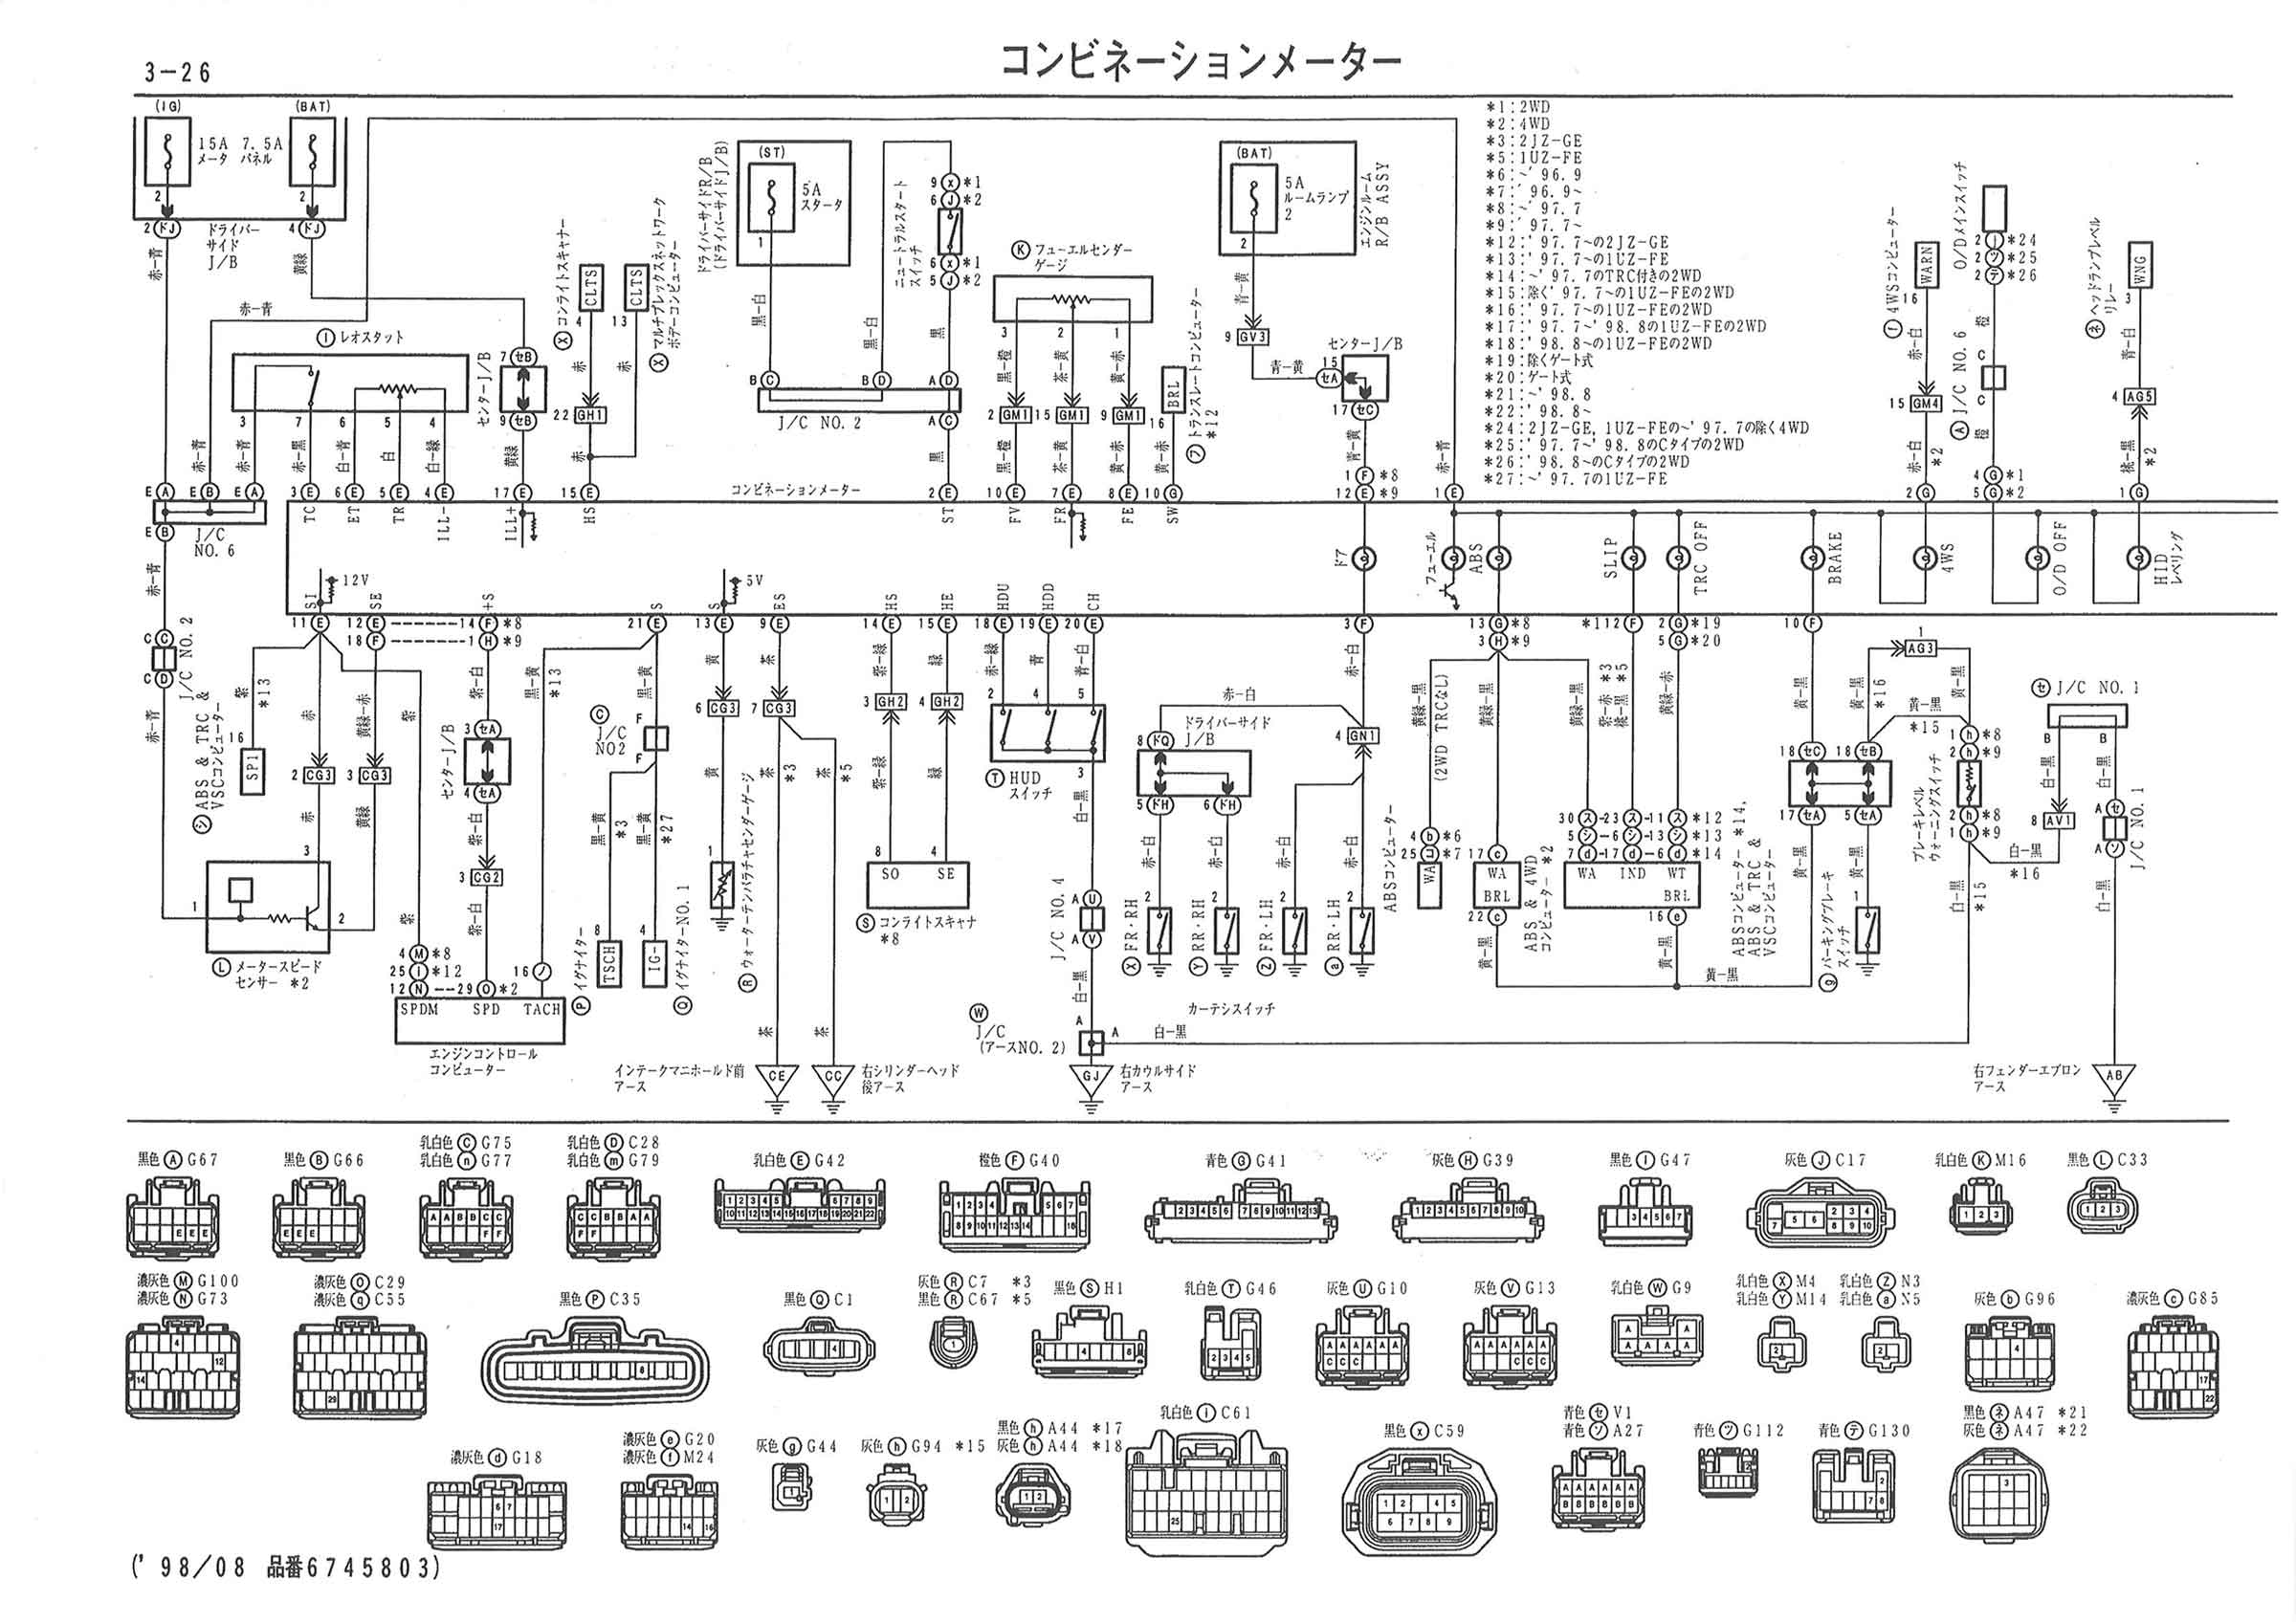 2jz Ge Ecu Wiring Diagram Library 1991 Toyota Mr2 20l Free Download User Manual Vvt I 10 Jza80 Supra Diagrams